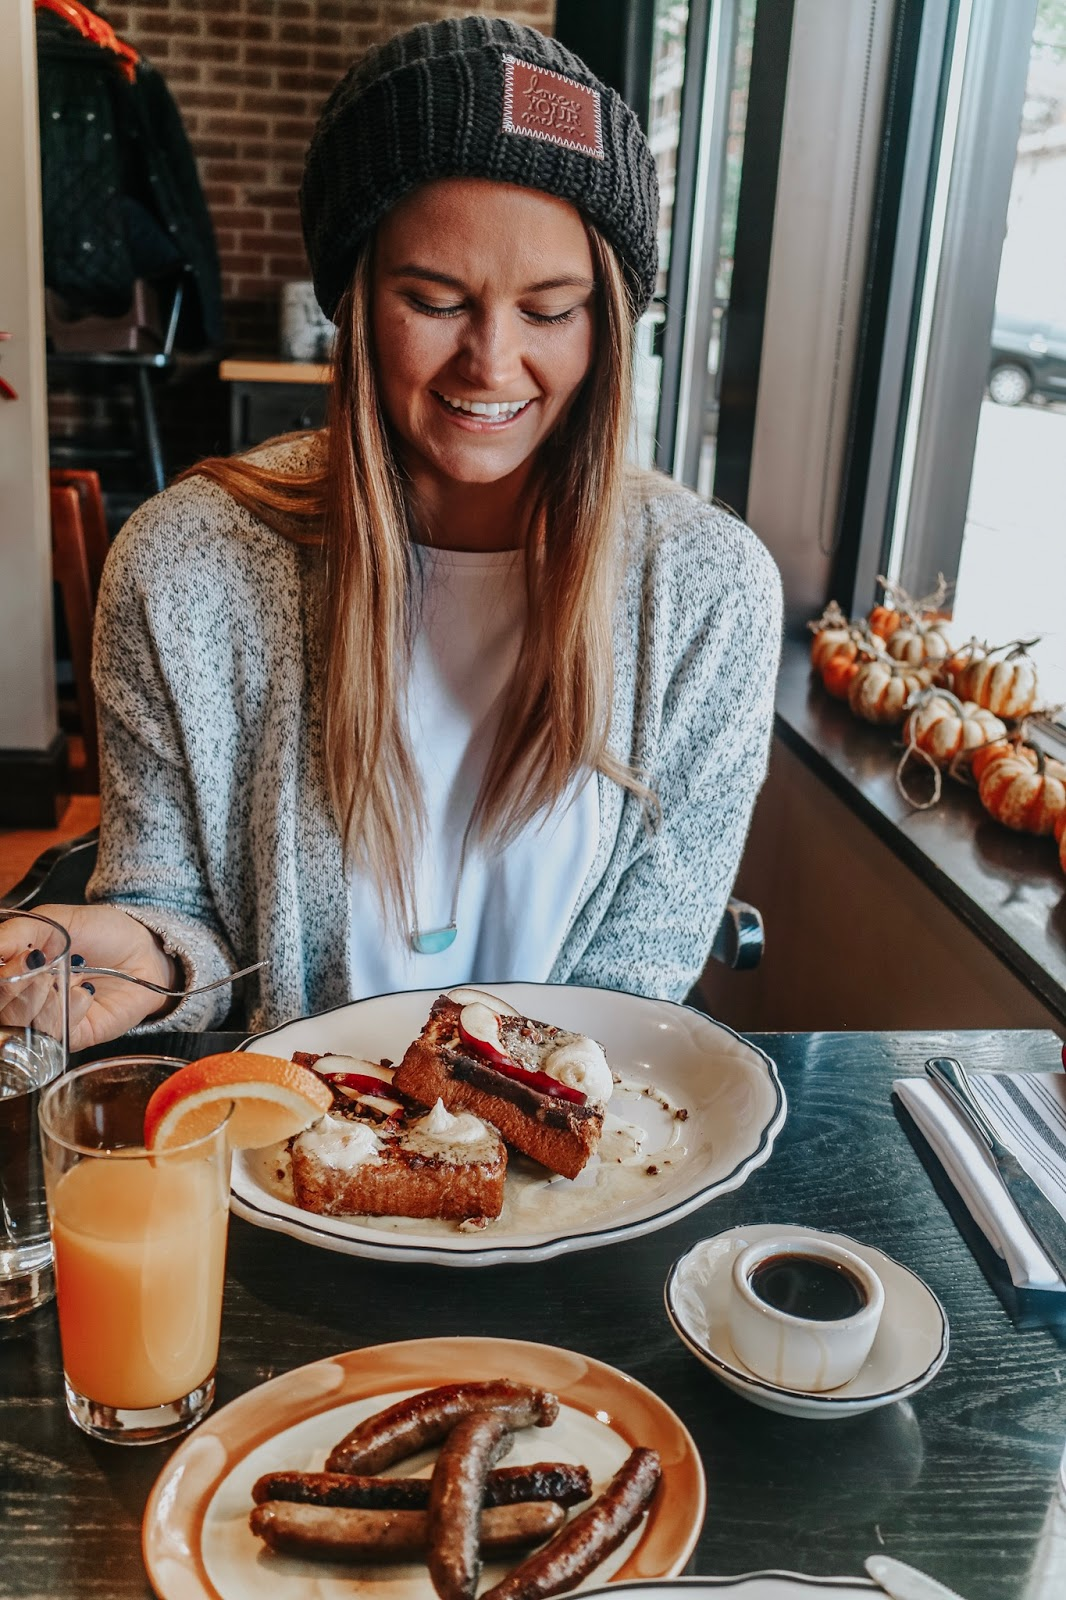 Tampa blogger enjoying french toast and more brunch items at Heritage Tavern in Madison, Wisconsin